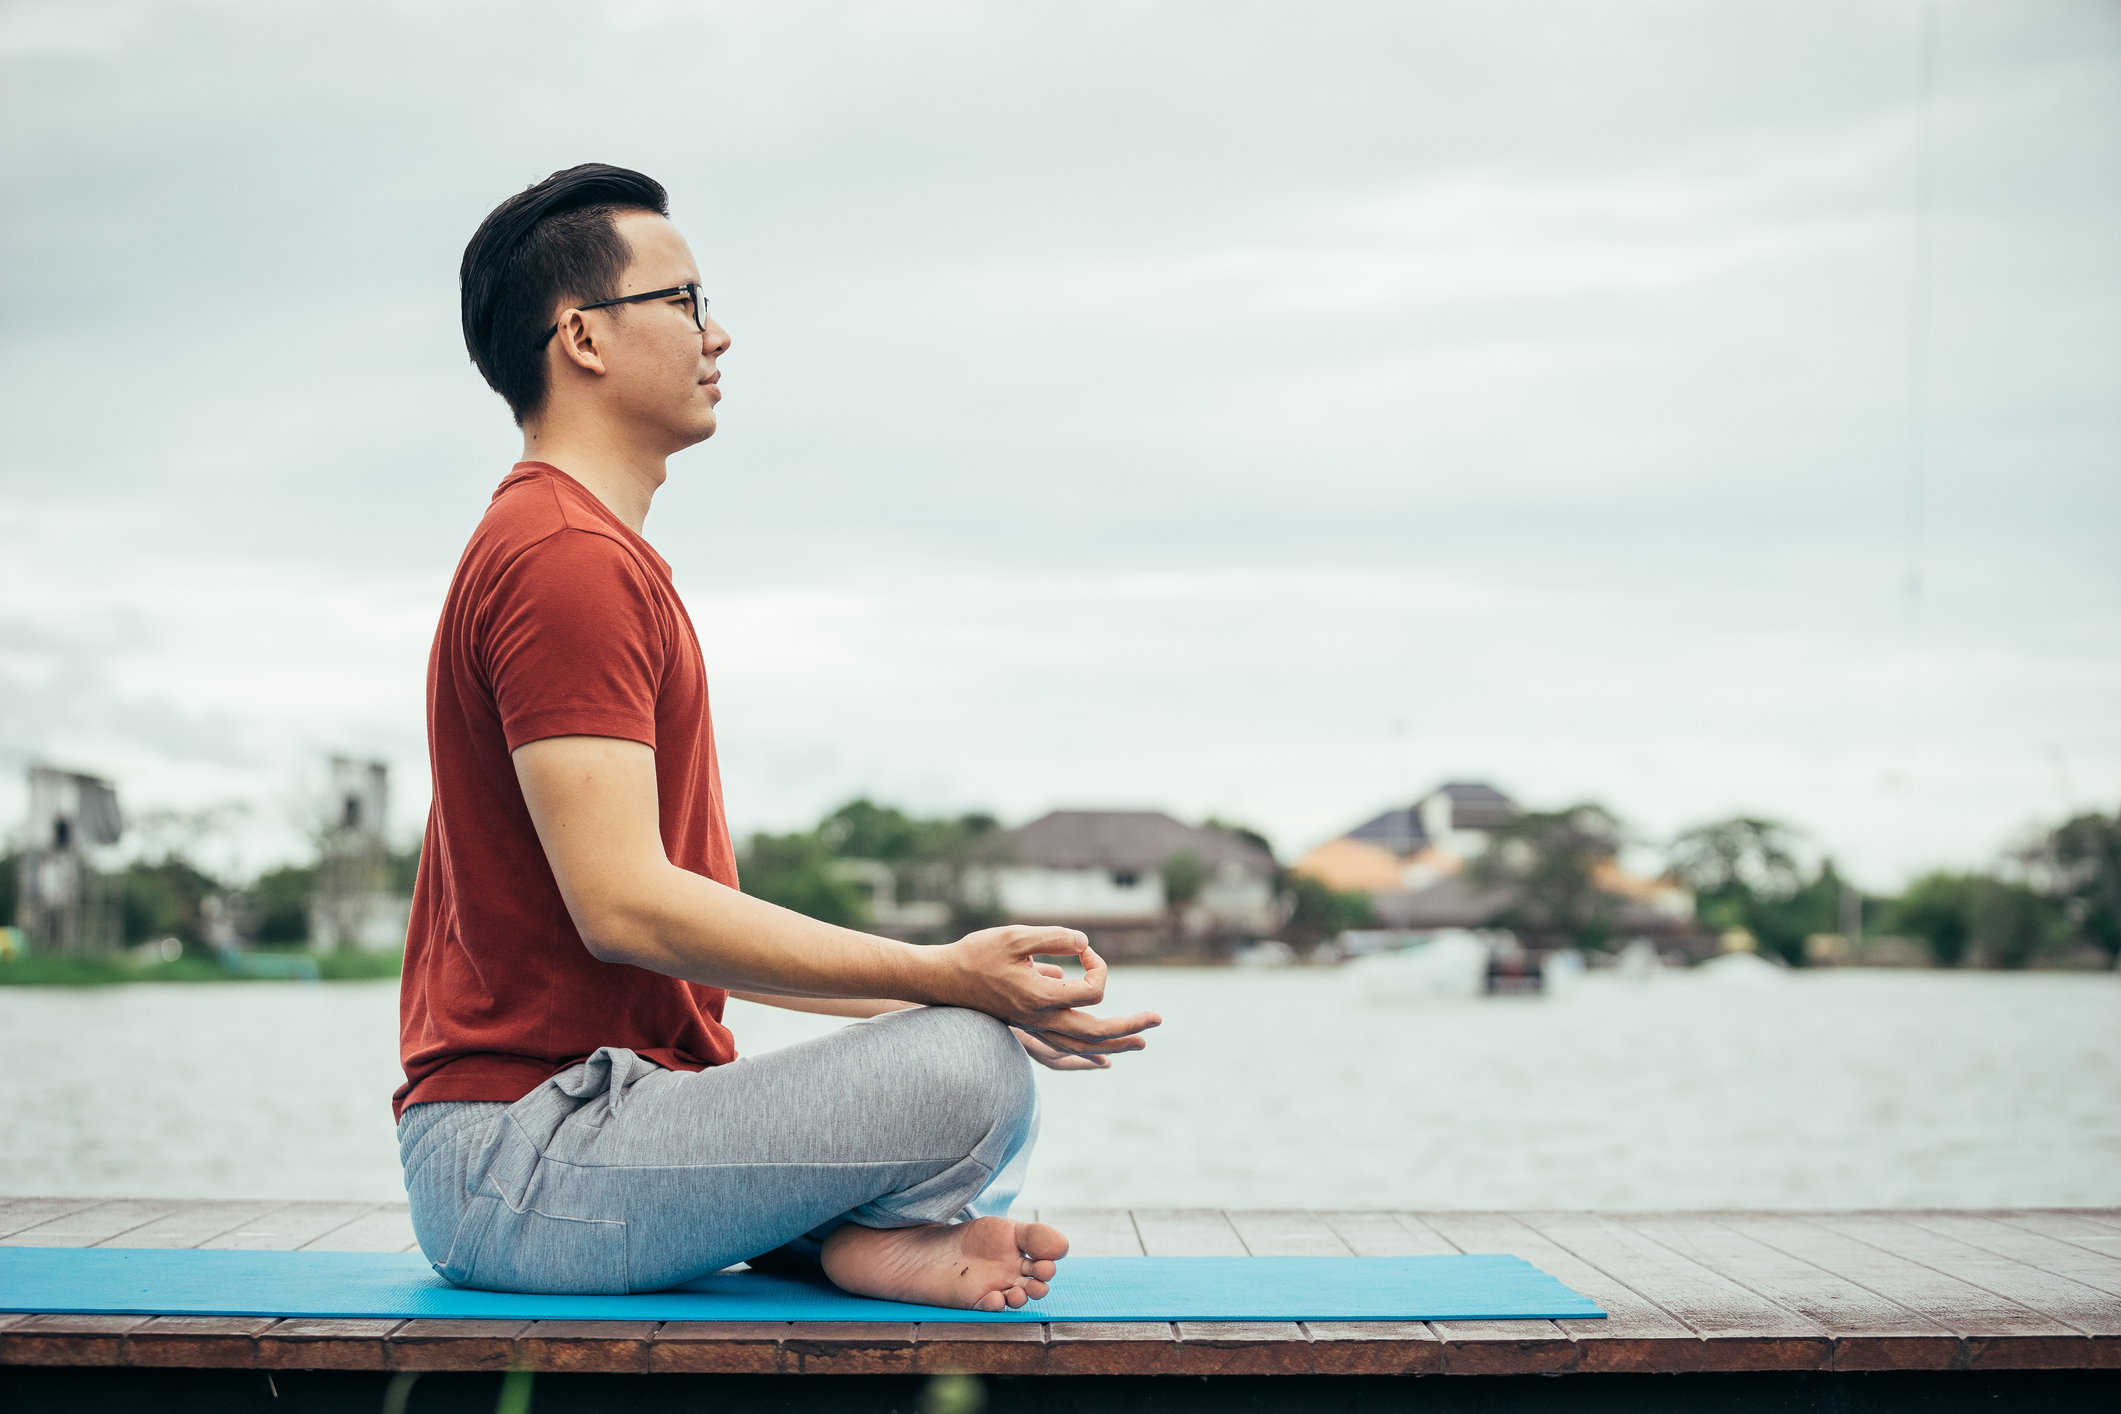 Stock photo of a man doing a meditative yoga pose